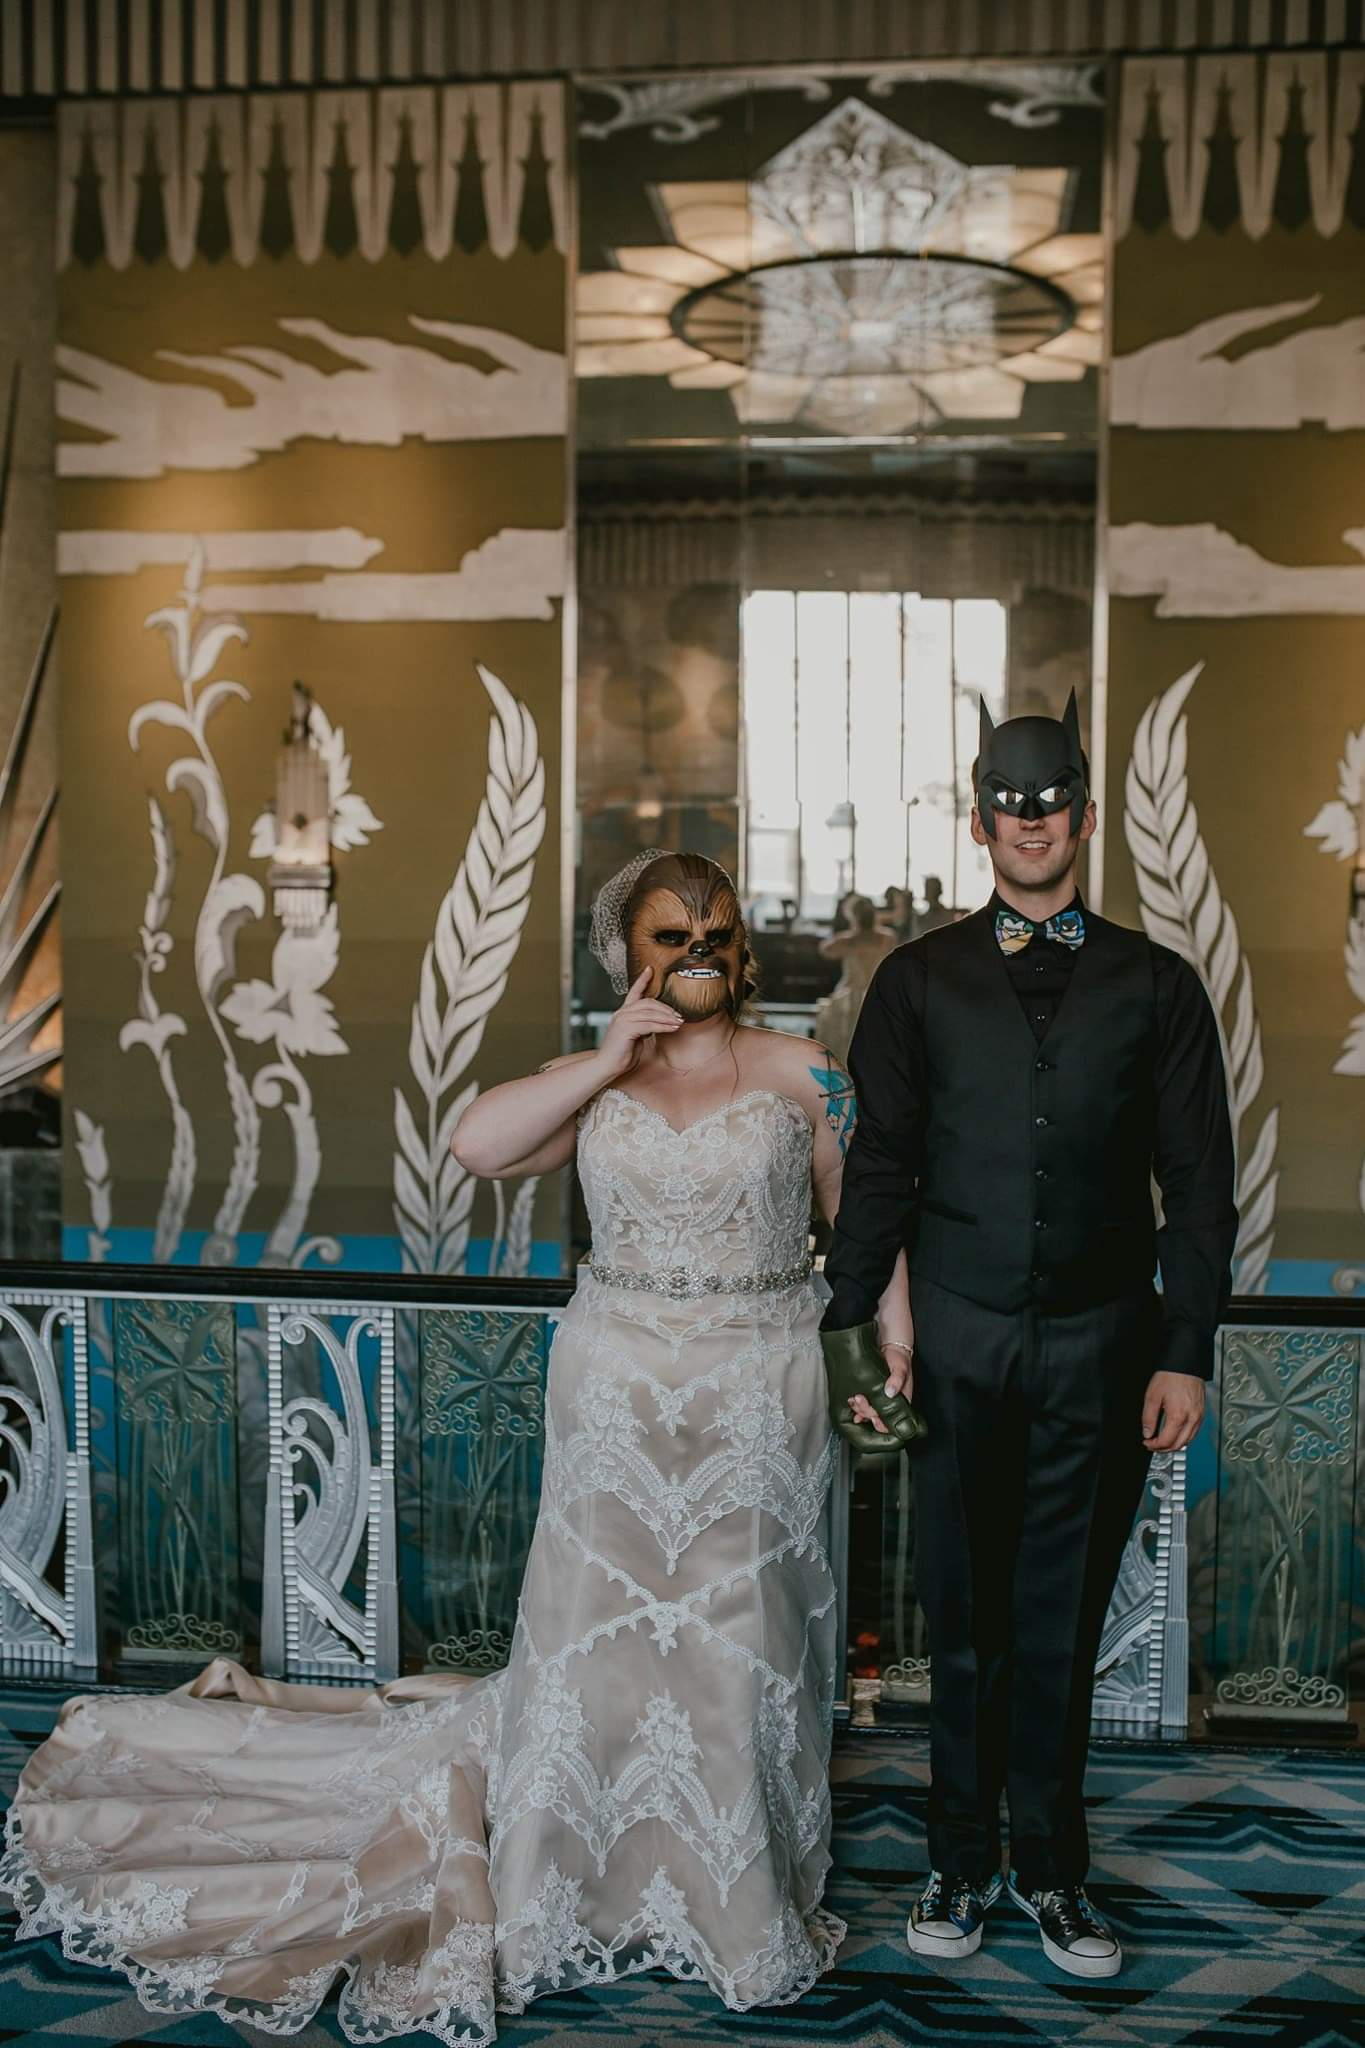 Nerdy Pop Culture Wedding at Historical Theatre in Spokane on Apple Brides